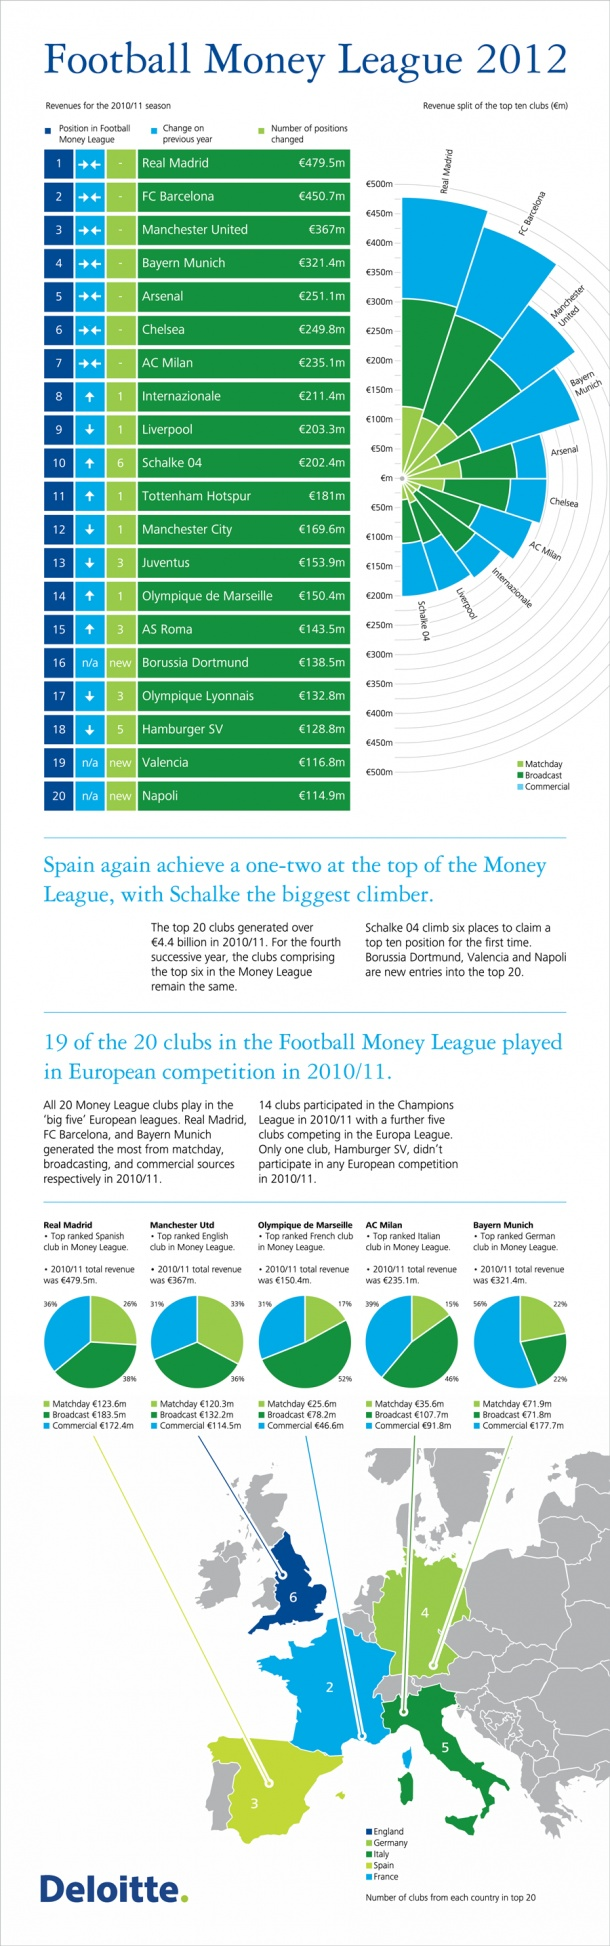 Football Money League 2012 [INFOGRAPHIC]